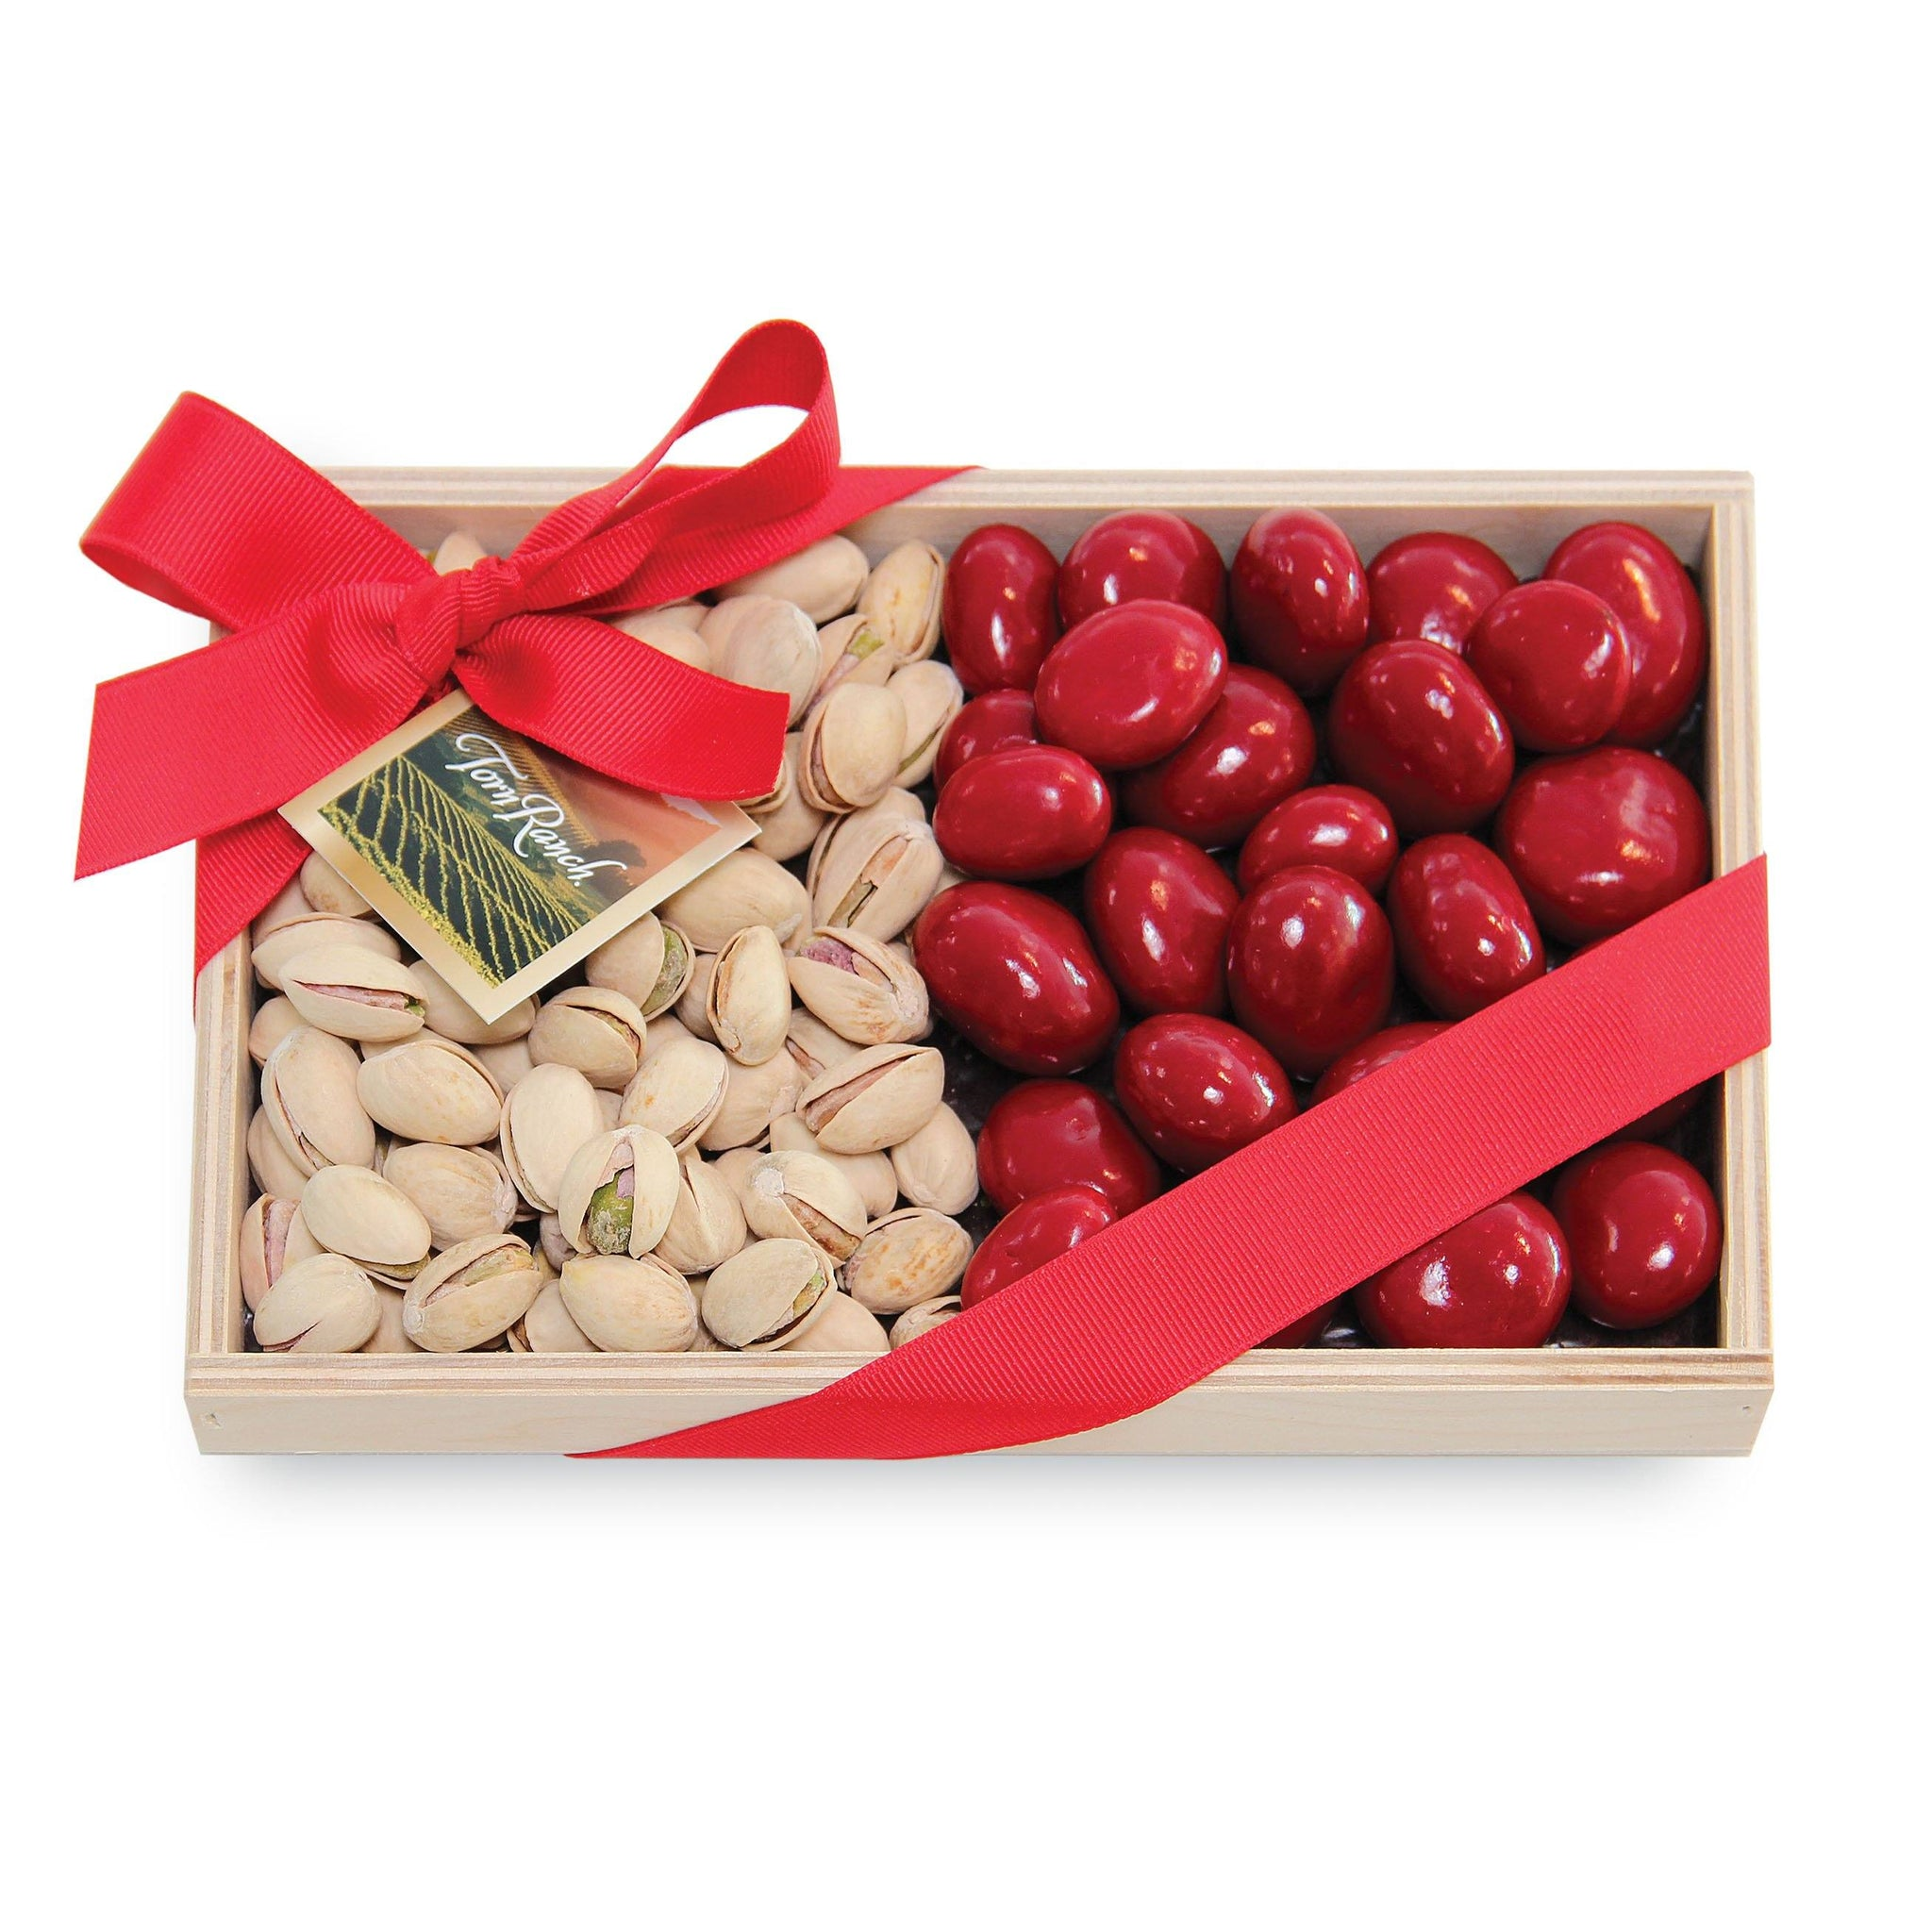 Colossal Pistachios and Chocolate Cherries in Wood Tray Unique Gifts & Gift Baskets vendor-unknown